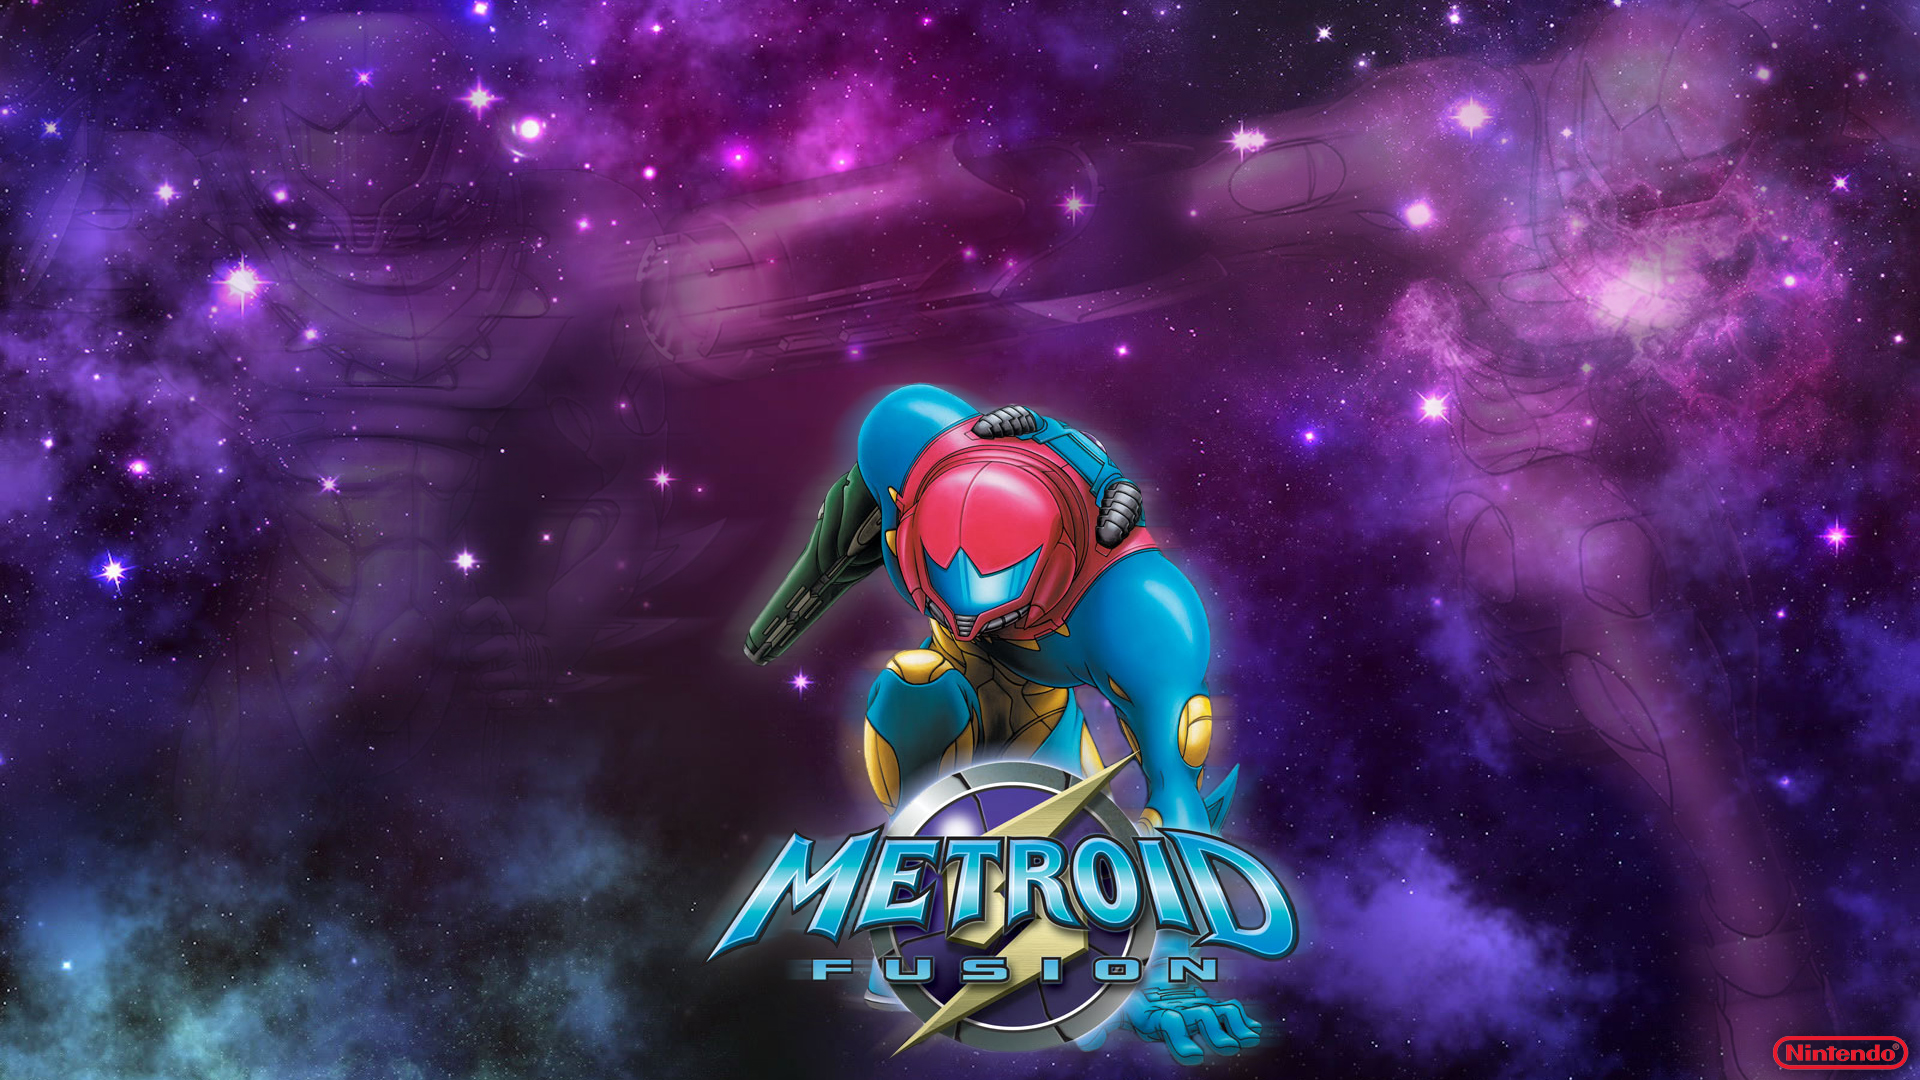 Kingdom Hearts Iphone Wallpaper Metroid Fusion Full Hd Wallpaper And Background Image